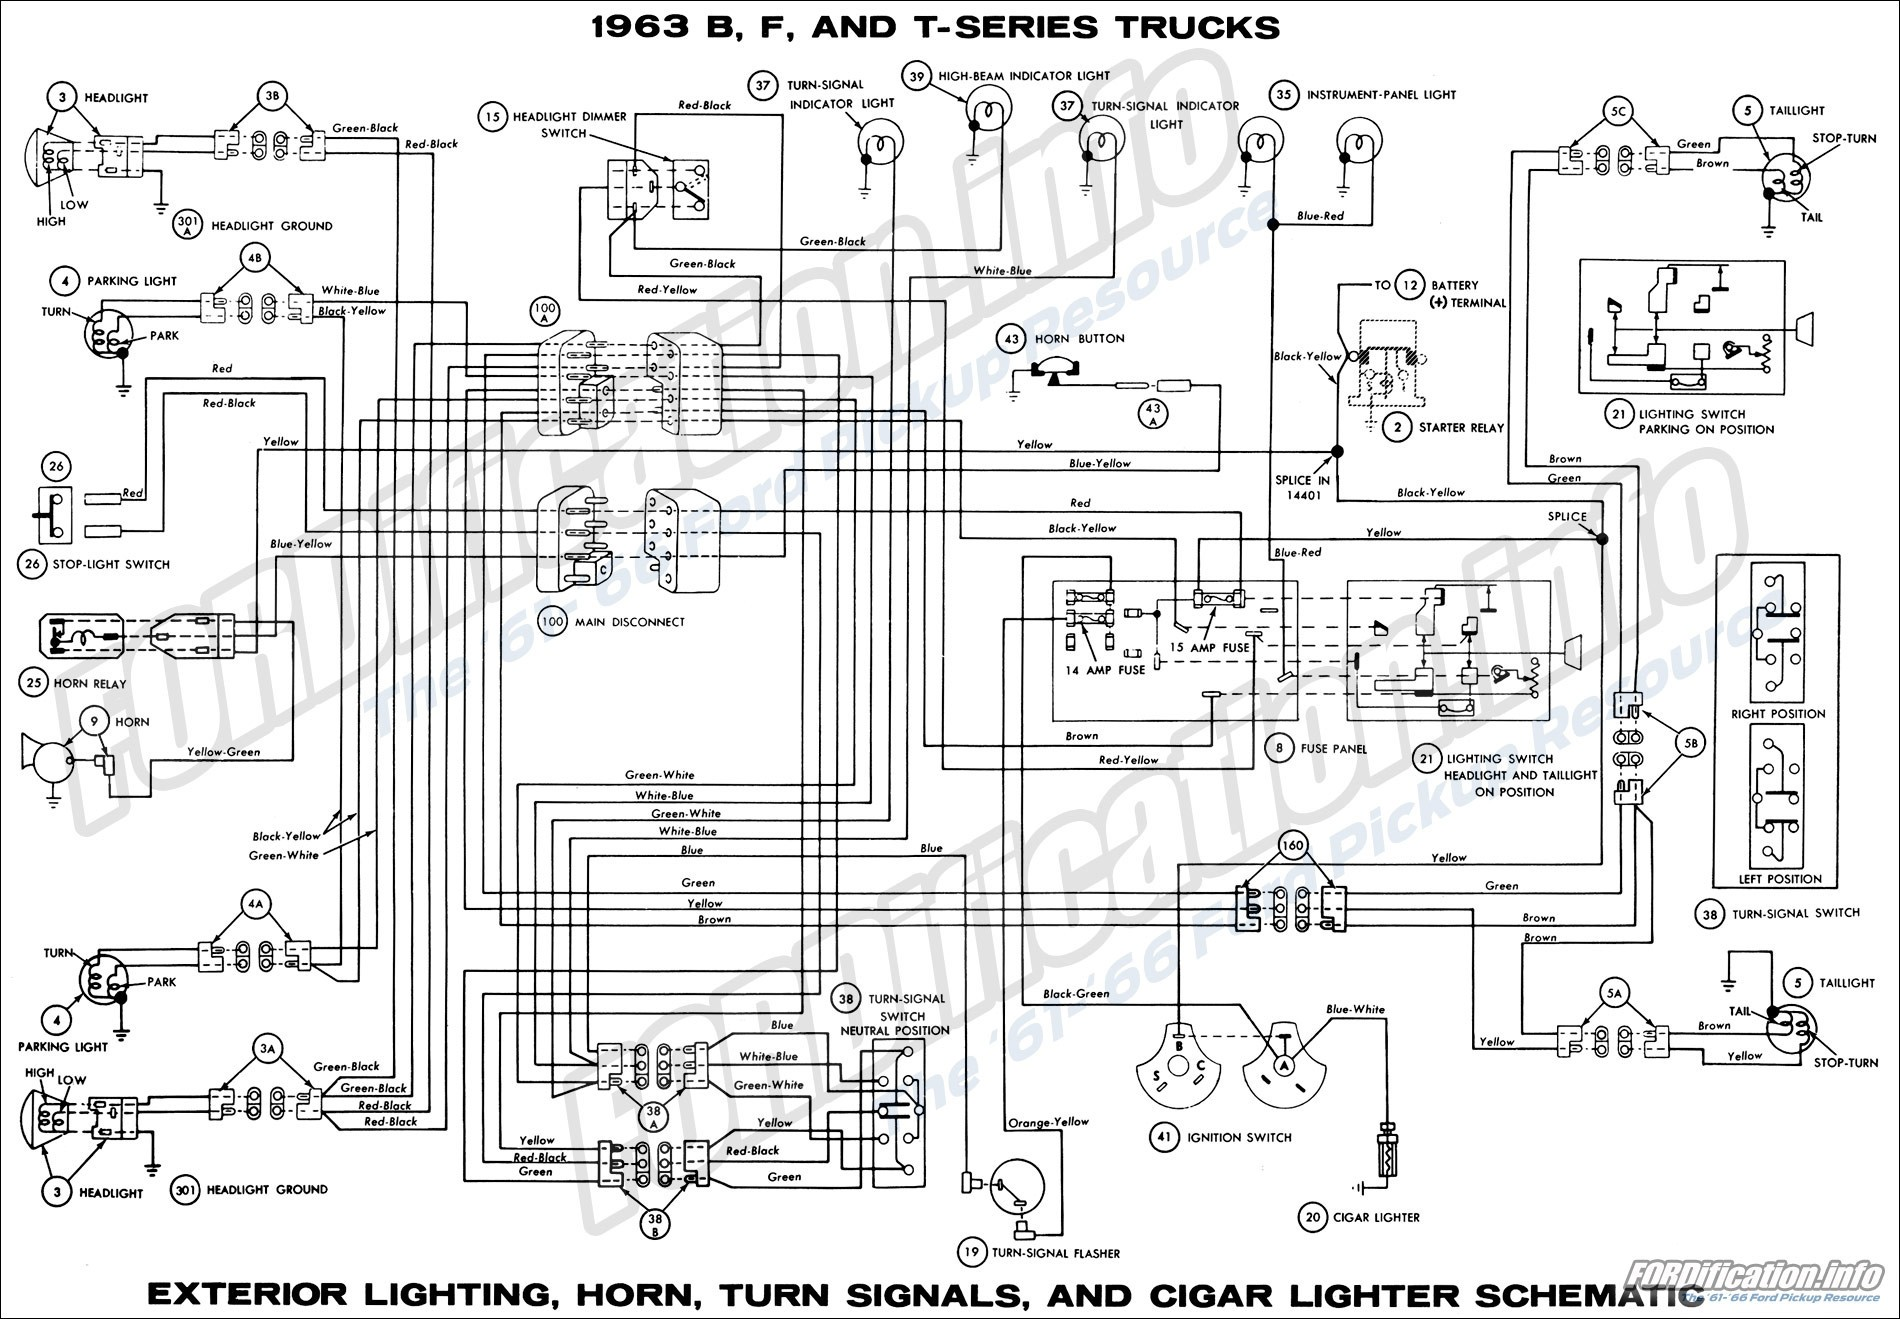 Ford Turn Signal Wiring Harness Great Design Of Diagram 65 Chevy Truck 79 U2022 1965 Chevrolet Harnness Integra